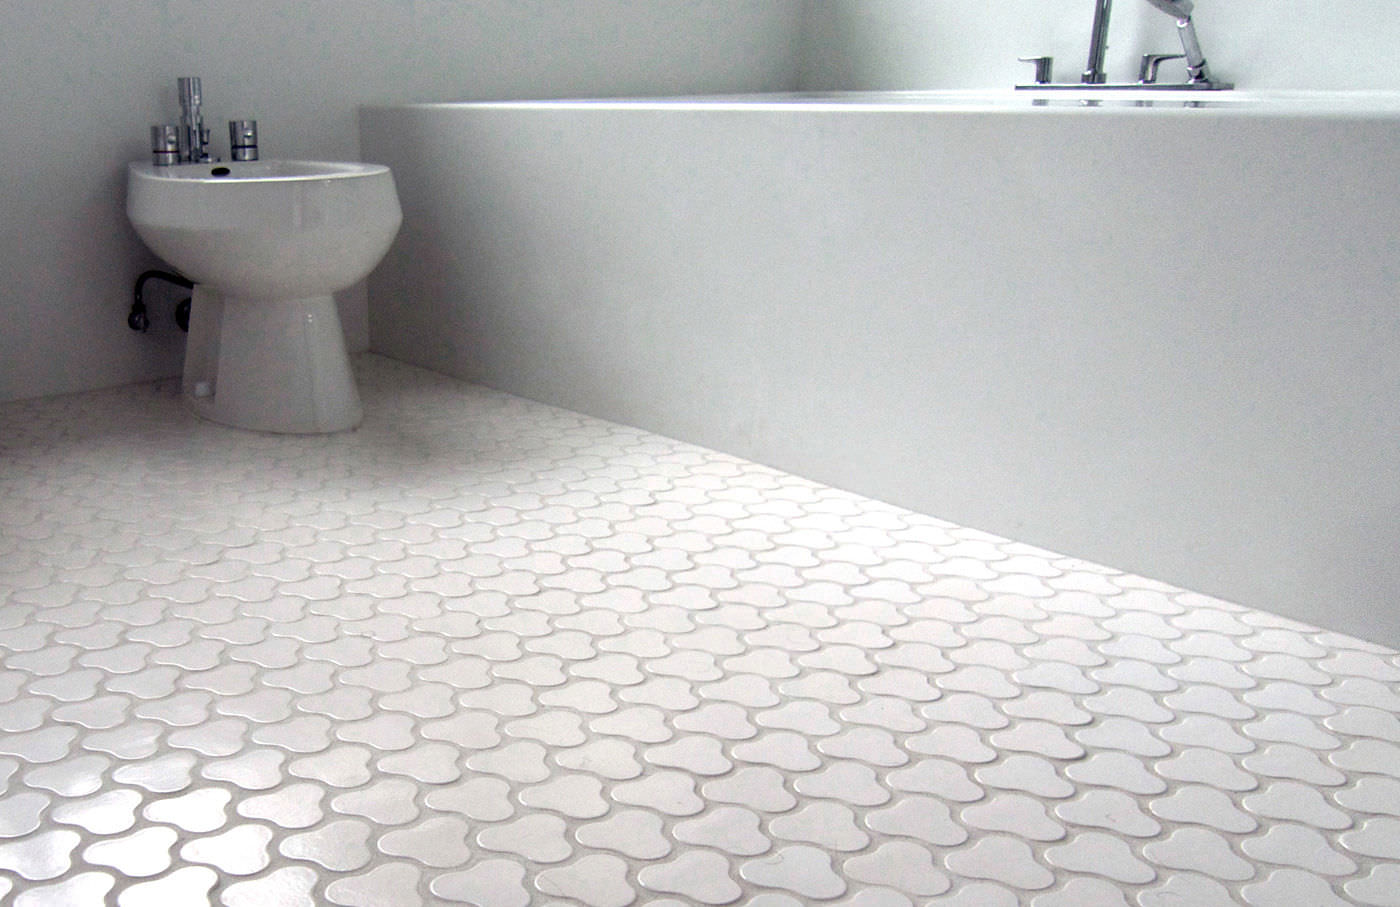 floor-tile-ceramic-bathroom-plain-64419-4233321